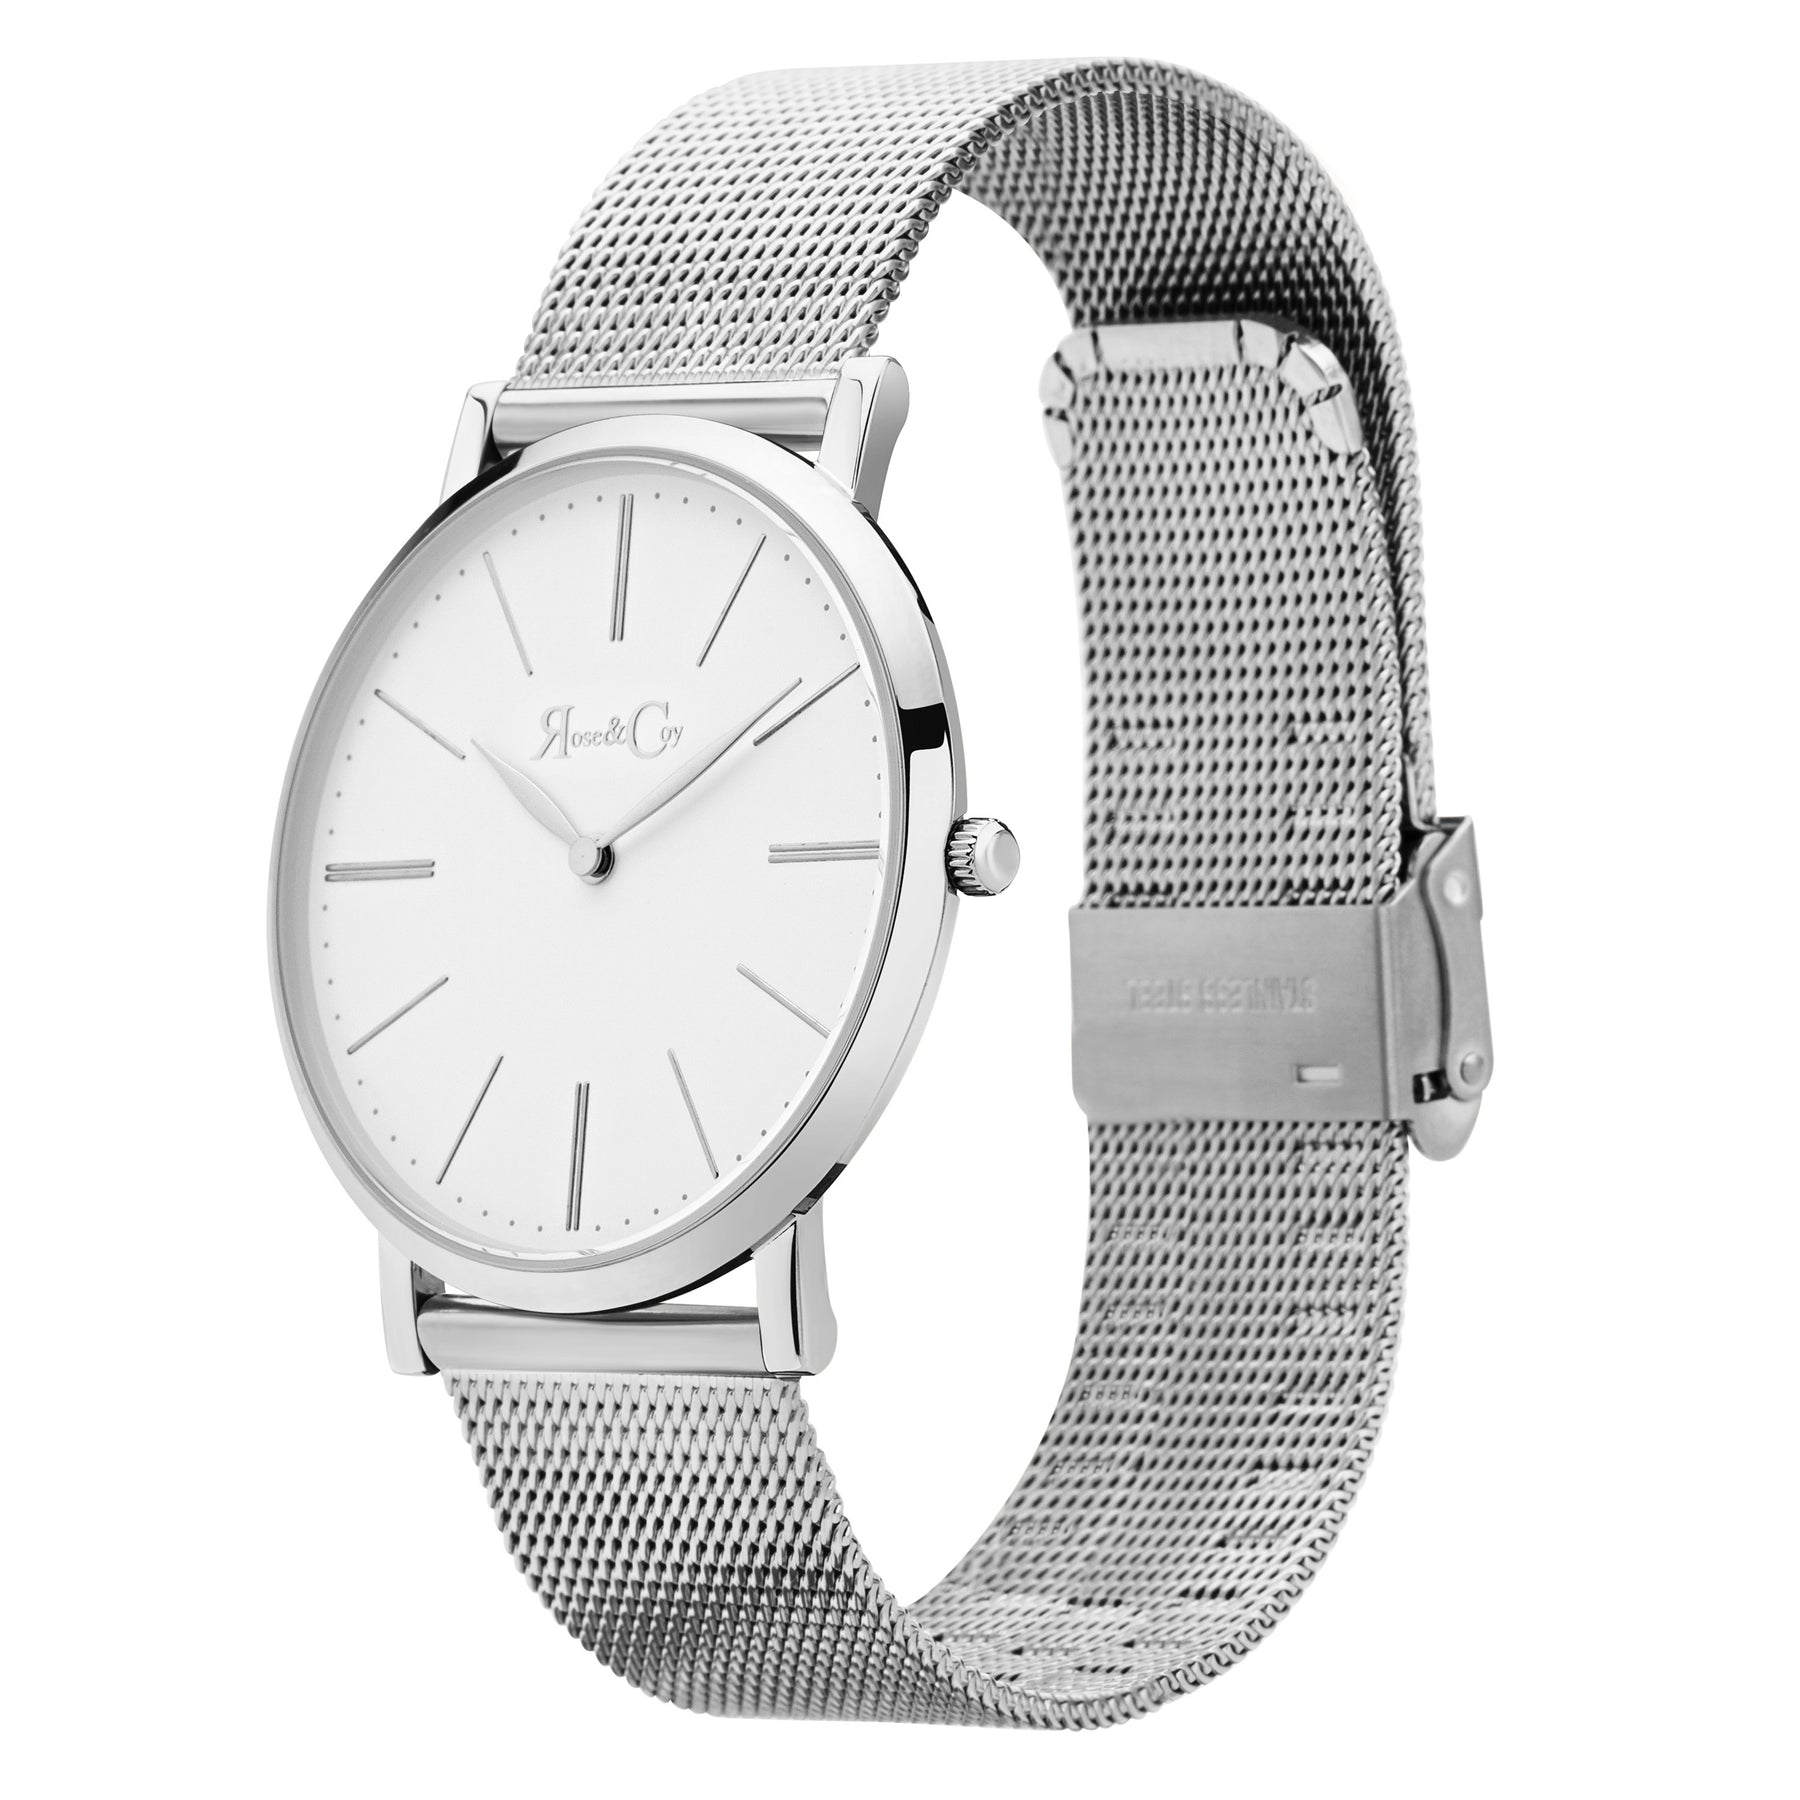 Pinnacle Ultra Slim 40mm Silver | Mesh Strap Watch